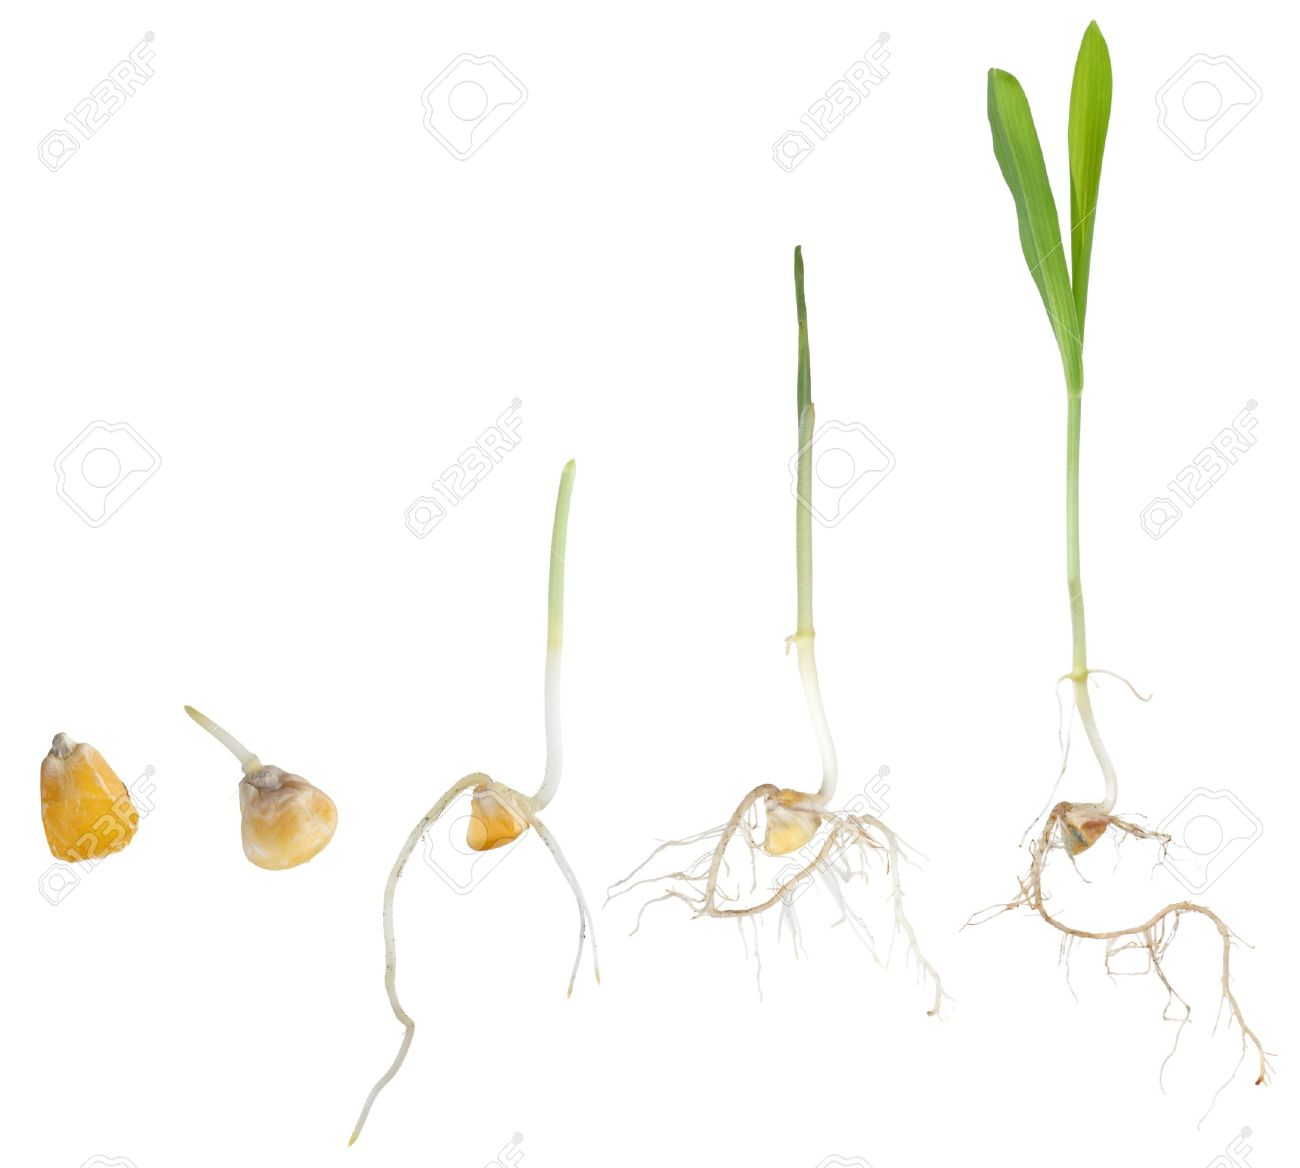 Corn plant growing from seed to seedling isolated on white Stock Photo - 9689759